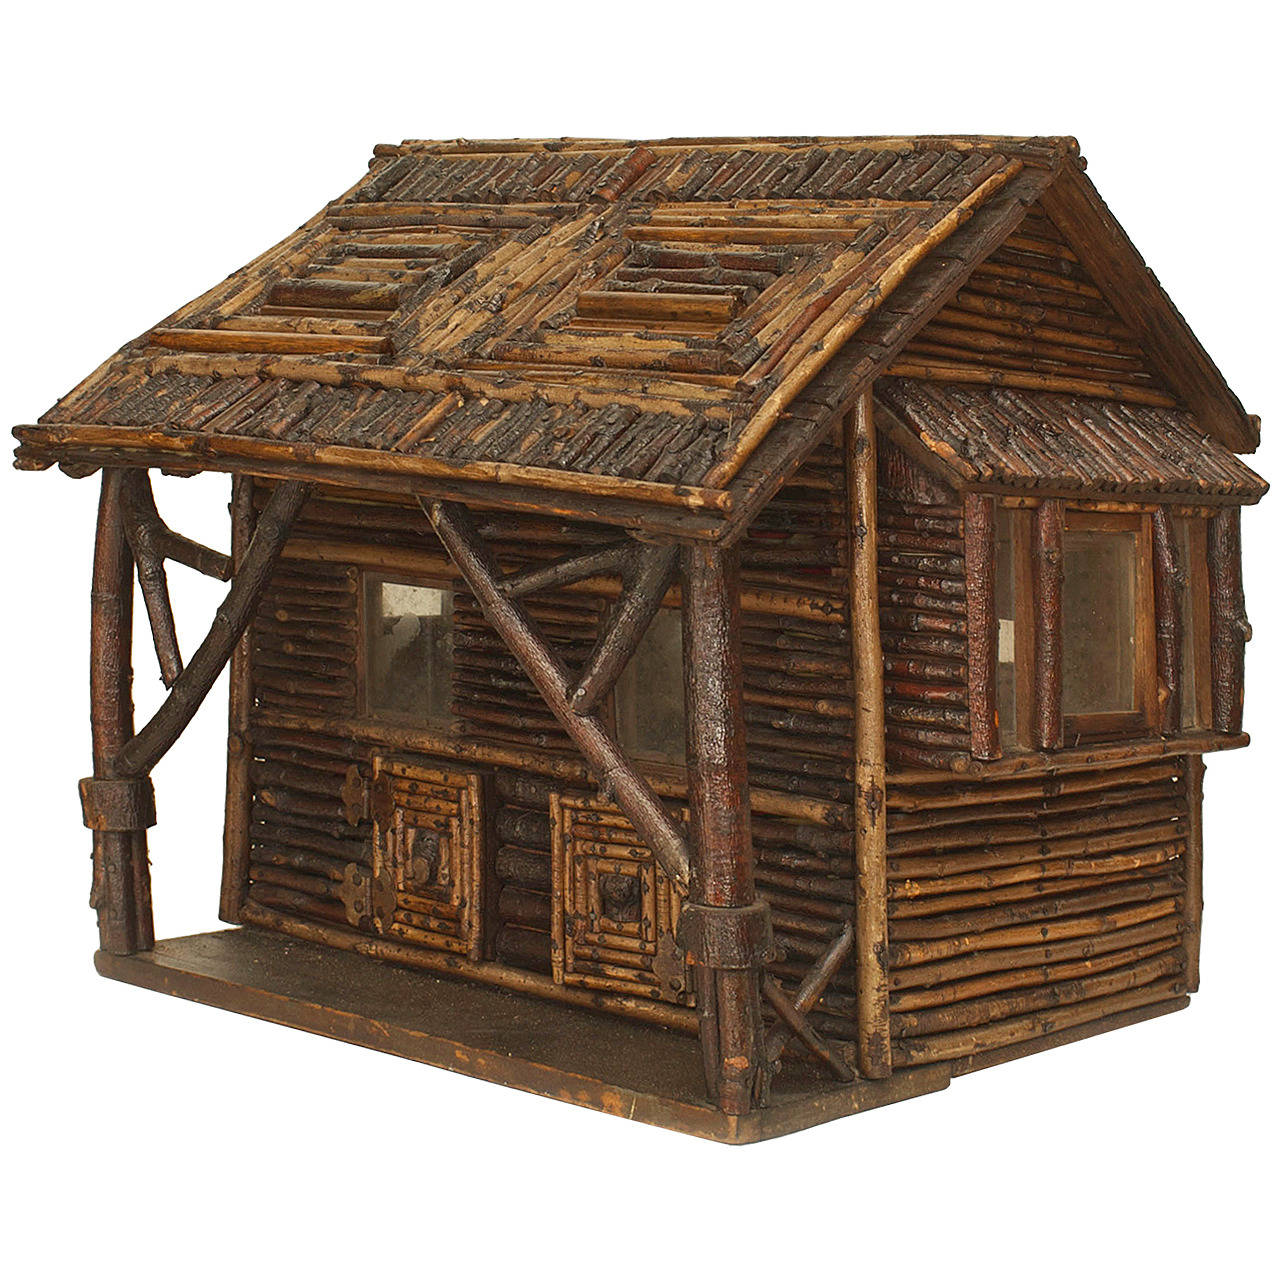 Model Homes Furniture Sale: Early 20th C. American Rustic Miniature Log Cabin For Sale